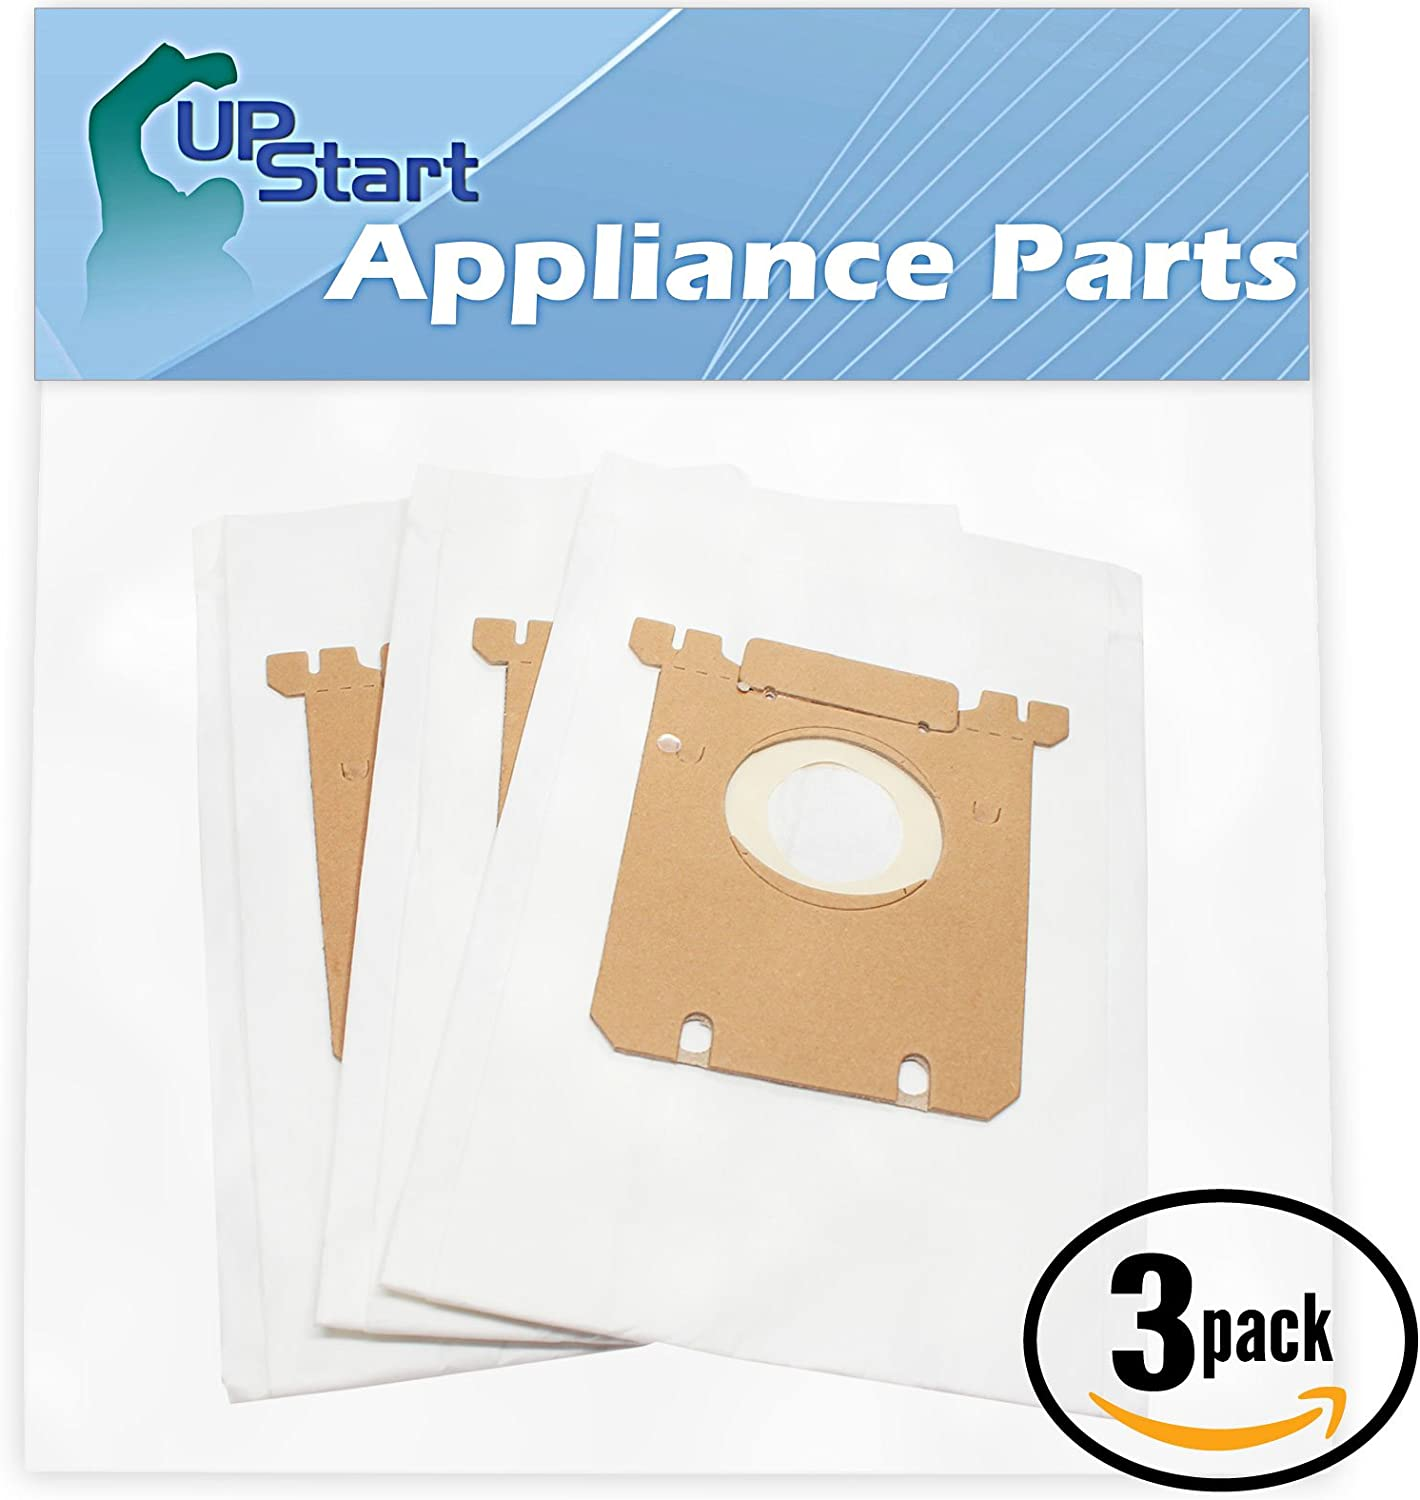 Upstart Battery 9 Replacement for Eureka 920 Series Style S Vacuum Bags - Compatible with Eureka 61230F, OX Vacuum Bags (3-Pack - 3 Vacuum Bags per Pack)